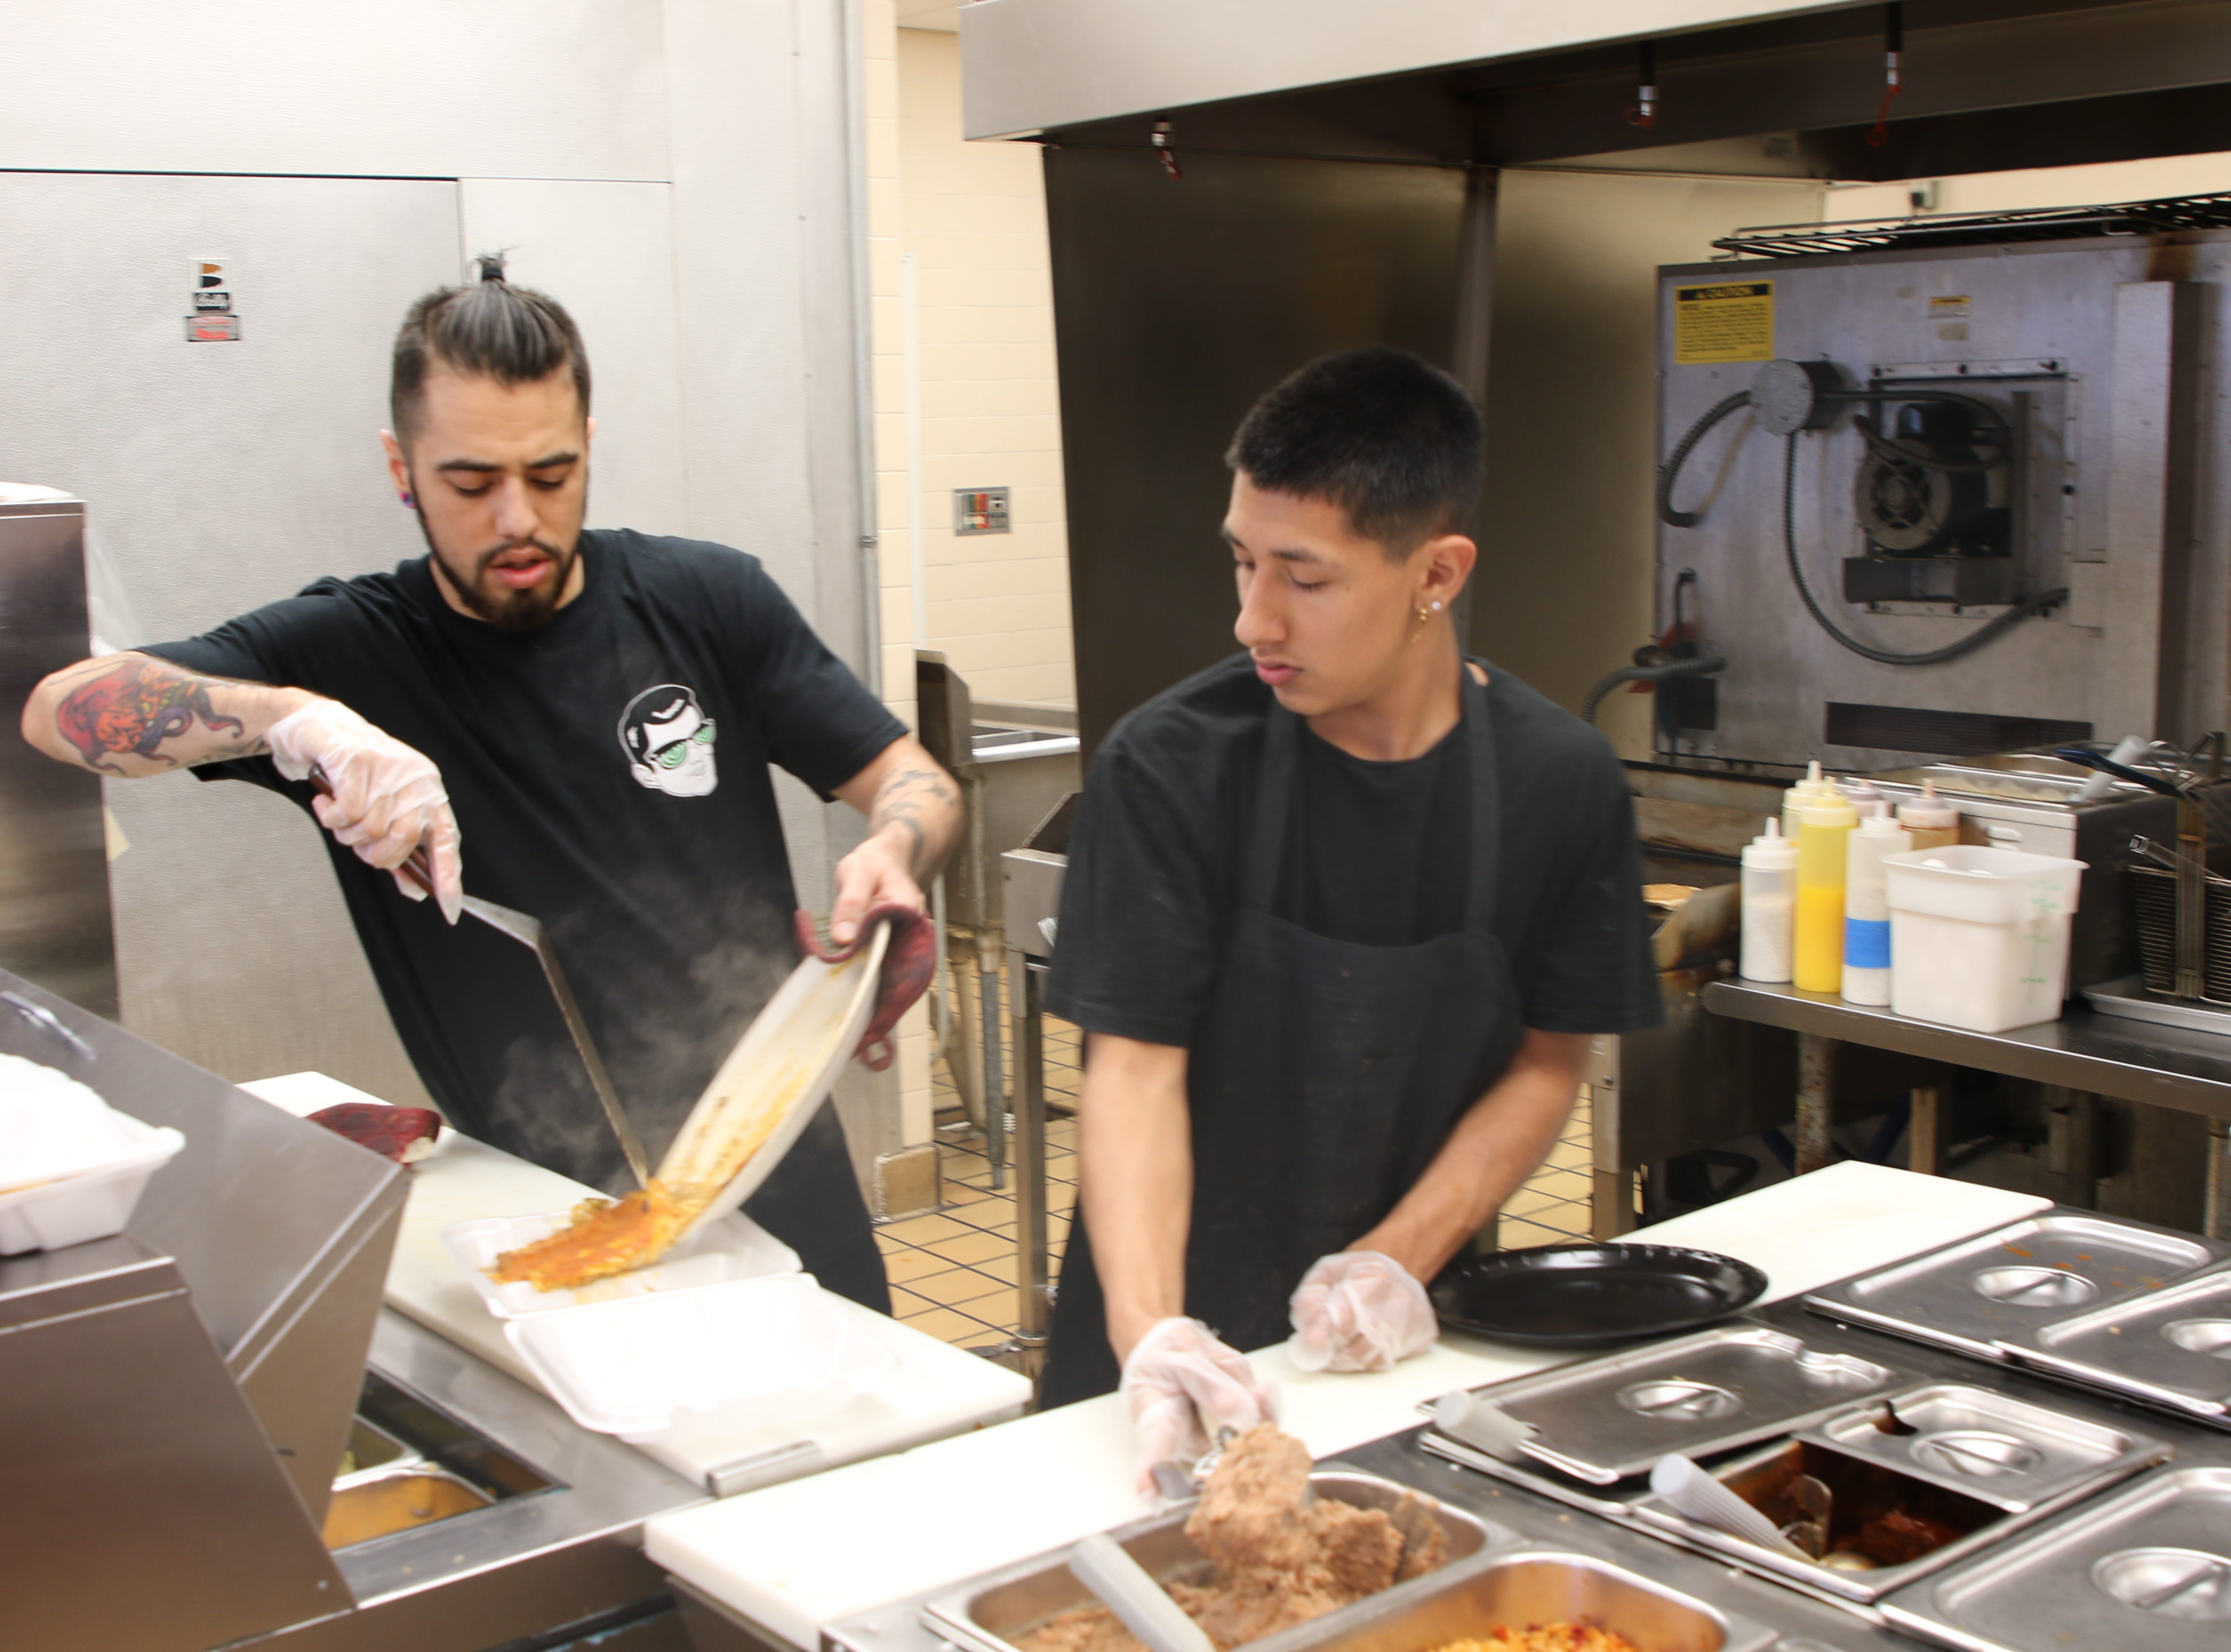 Gabriel Smith (left) and Julian Moreno prepare a meal at PJ and B's Rio Cafe in Carlsbad.